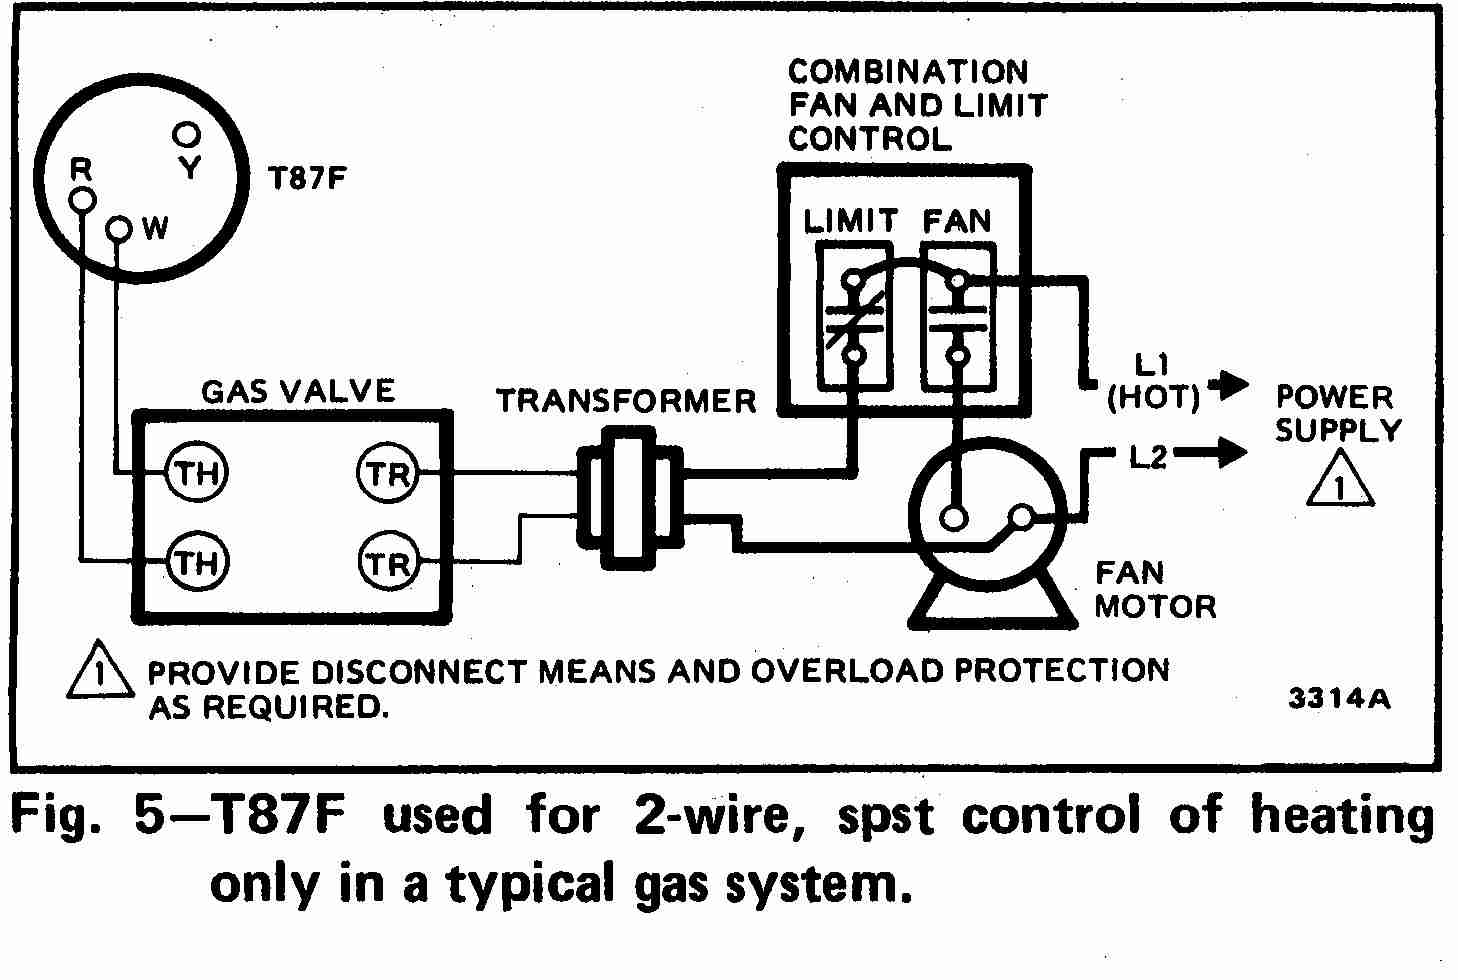 Room Thermostat Wiring Diagrams For Hvac Systems Drawing Details Honeywell T87f Diagram 2 Wire Spst Control Of Heating Only In